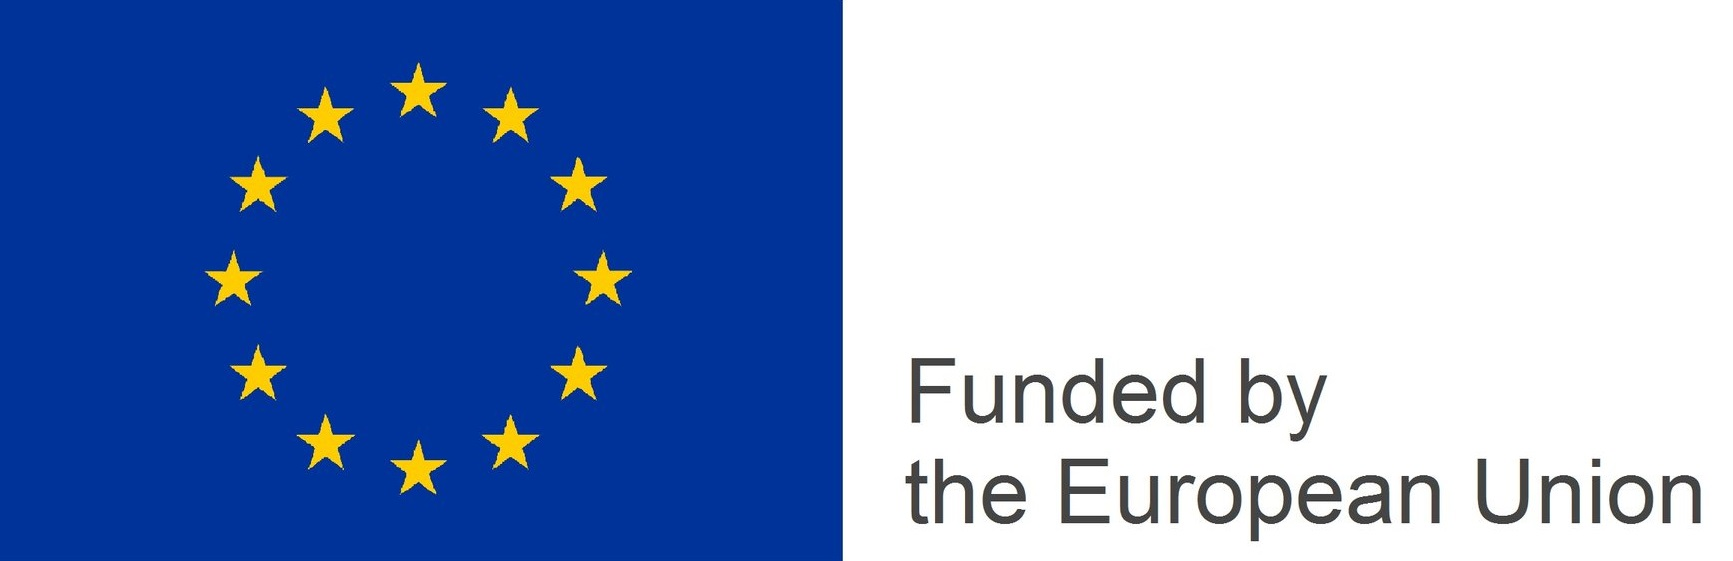 Funded by European Union